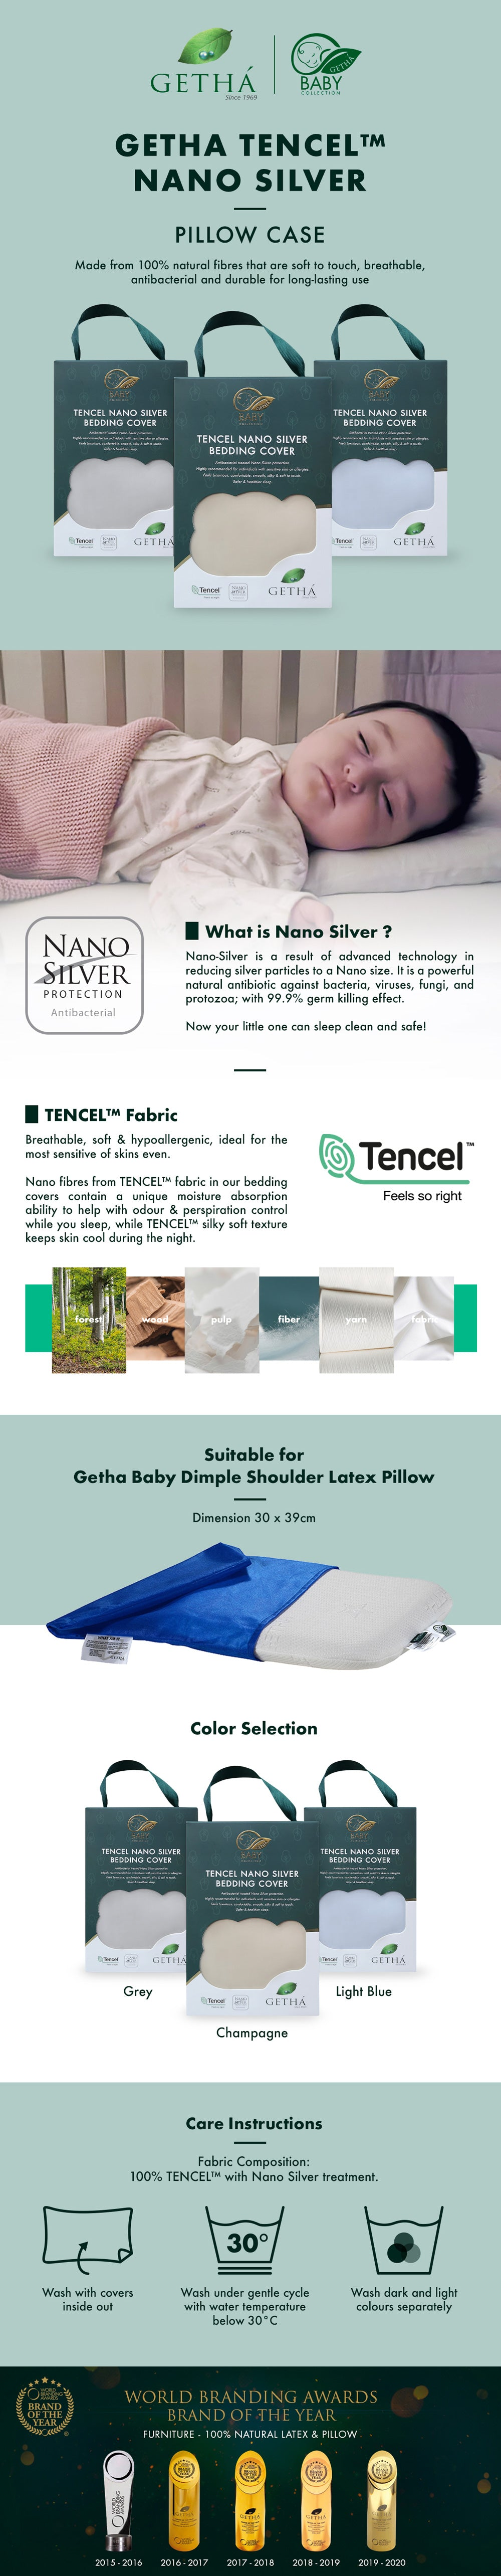 Getha Tencel Nano Silver Pillow Case – Baby Dimple Shoulder Latex Pillow